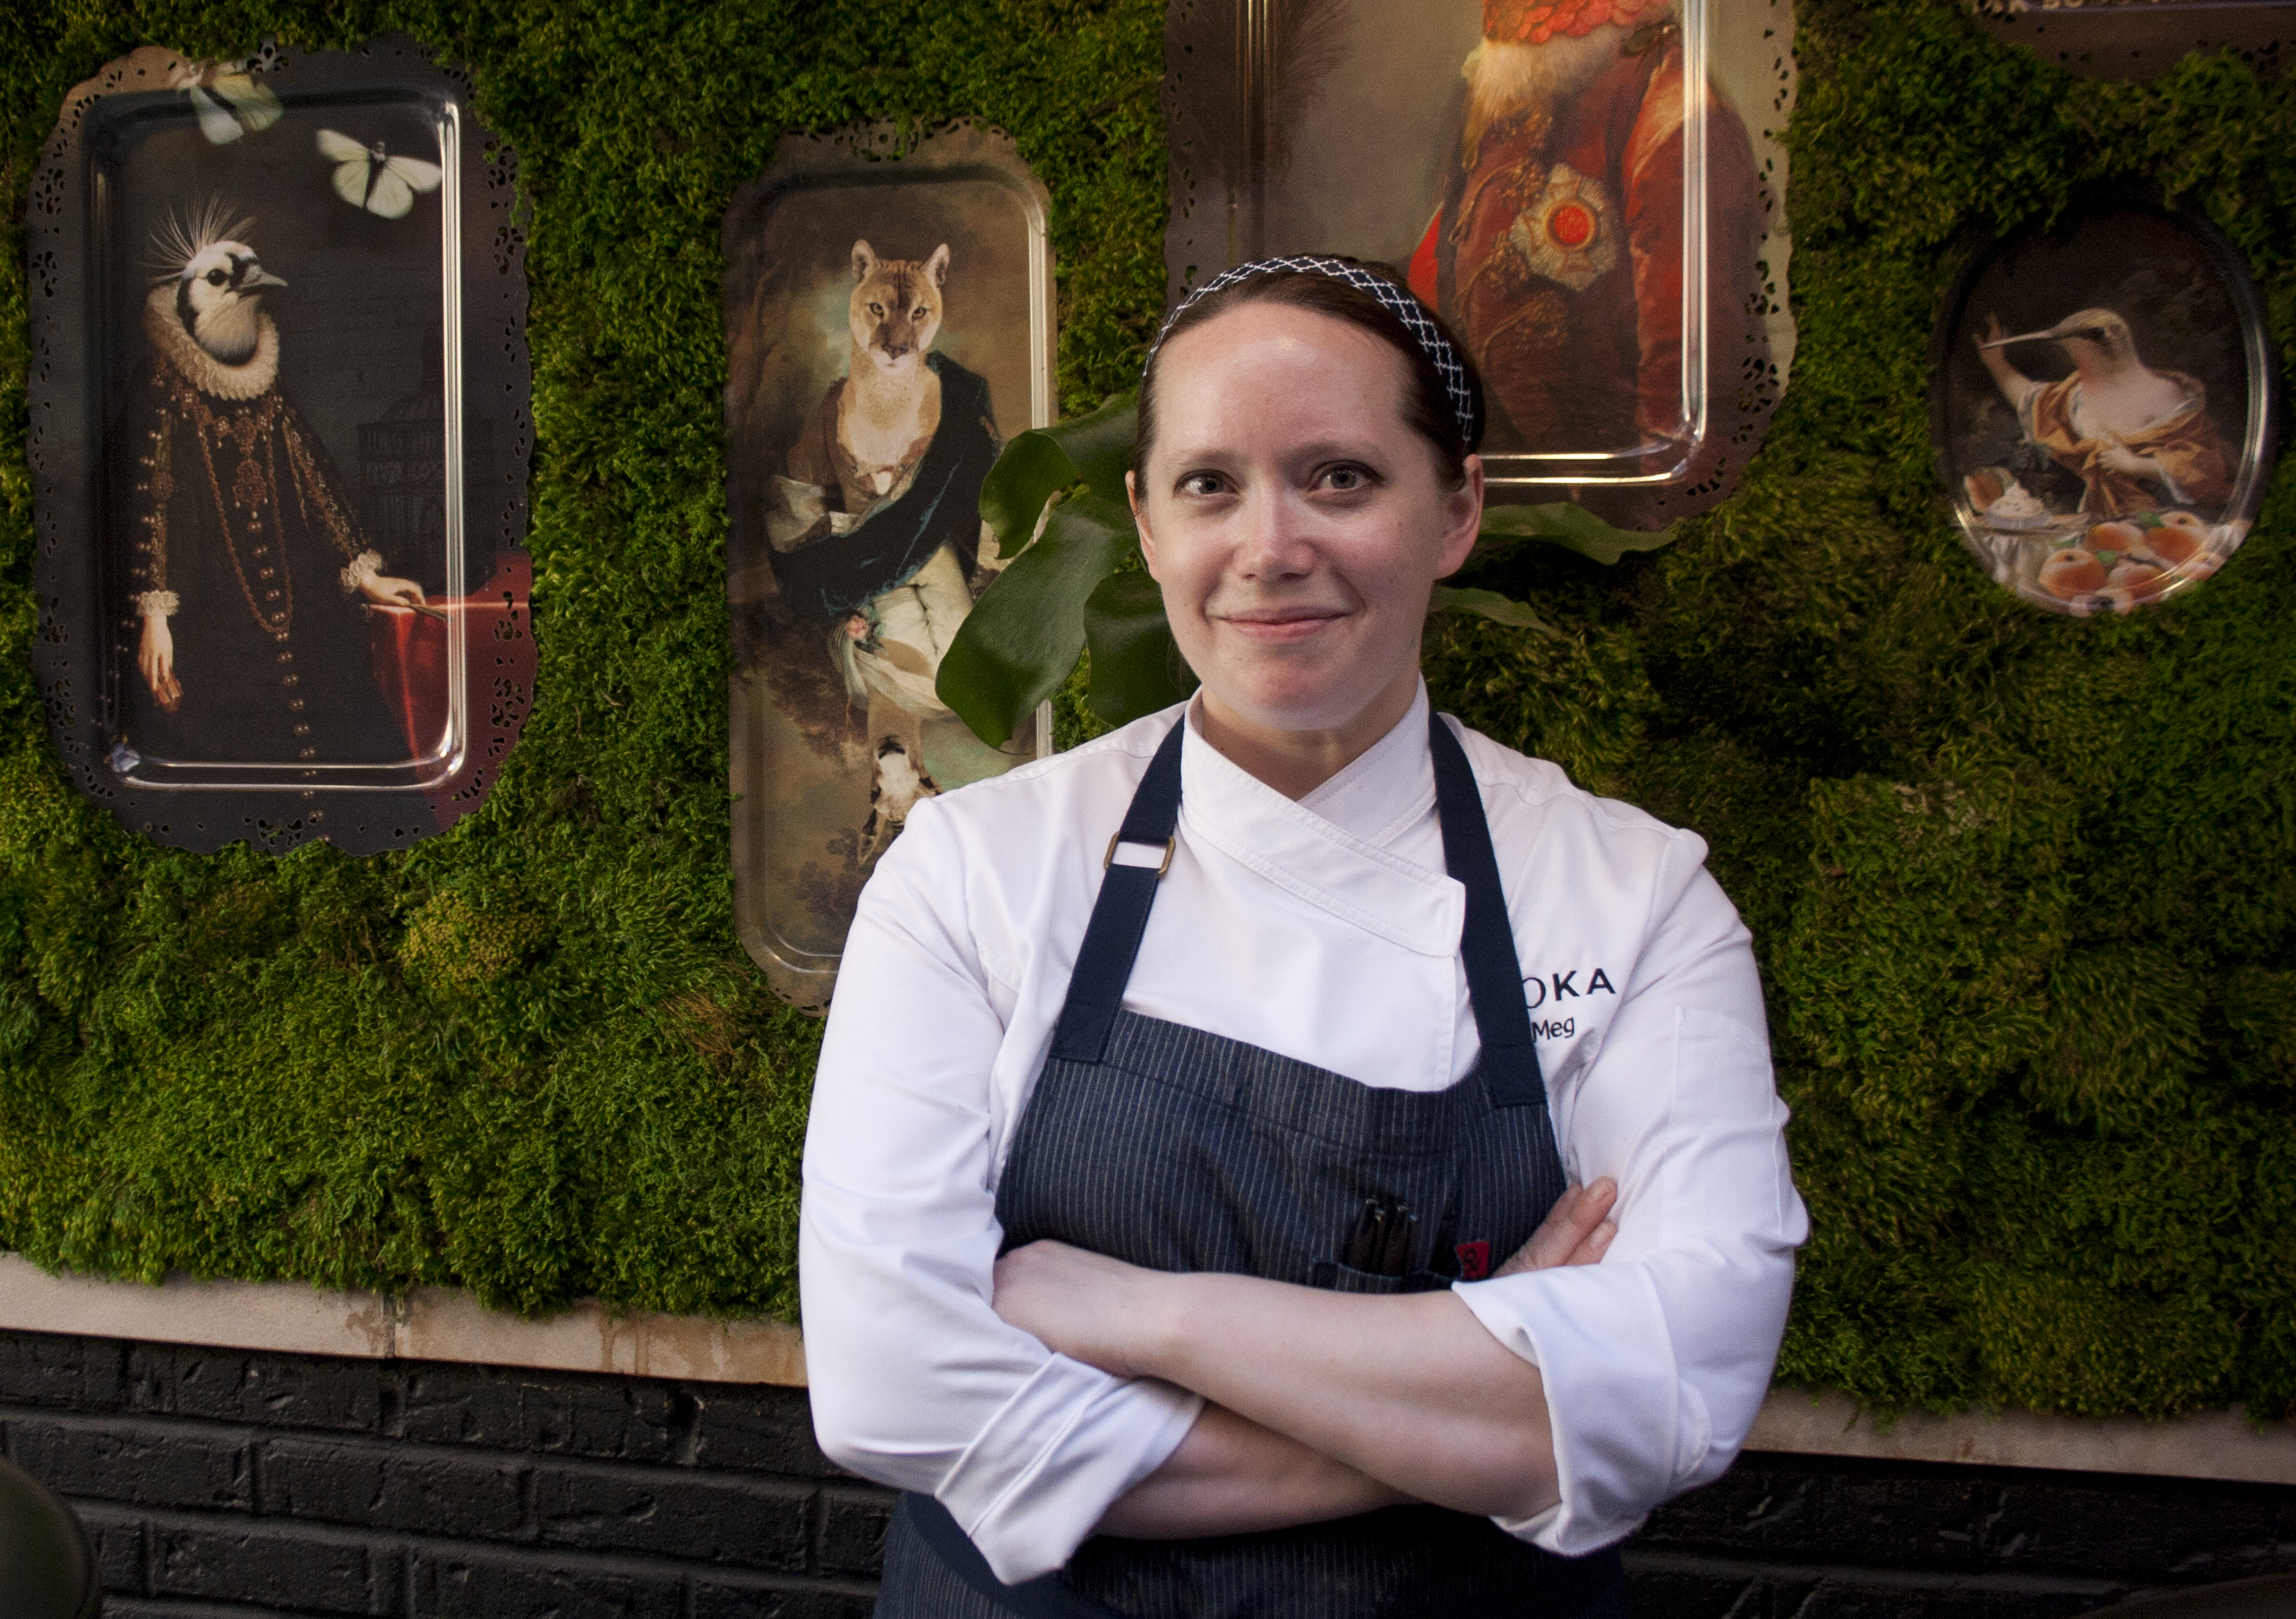 A smiling person with an apron in front of a turfed wall with framed art.